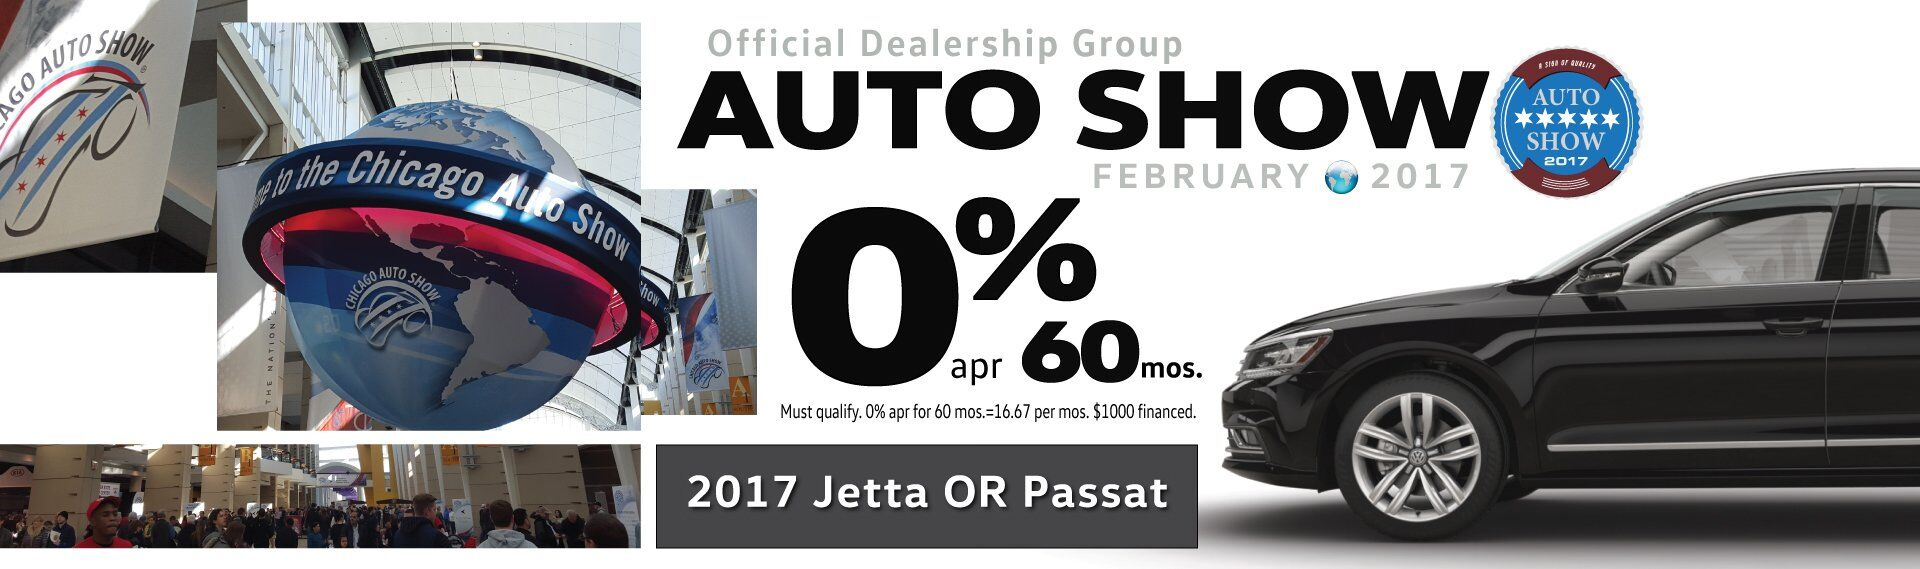 0% APR On Jetta & Passat